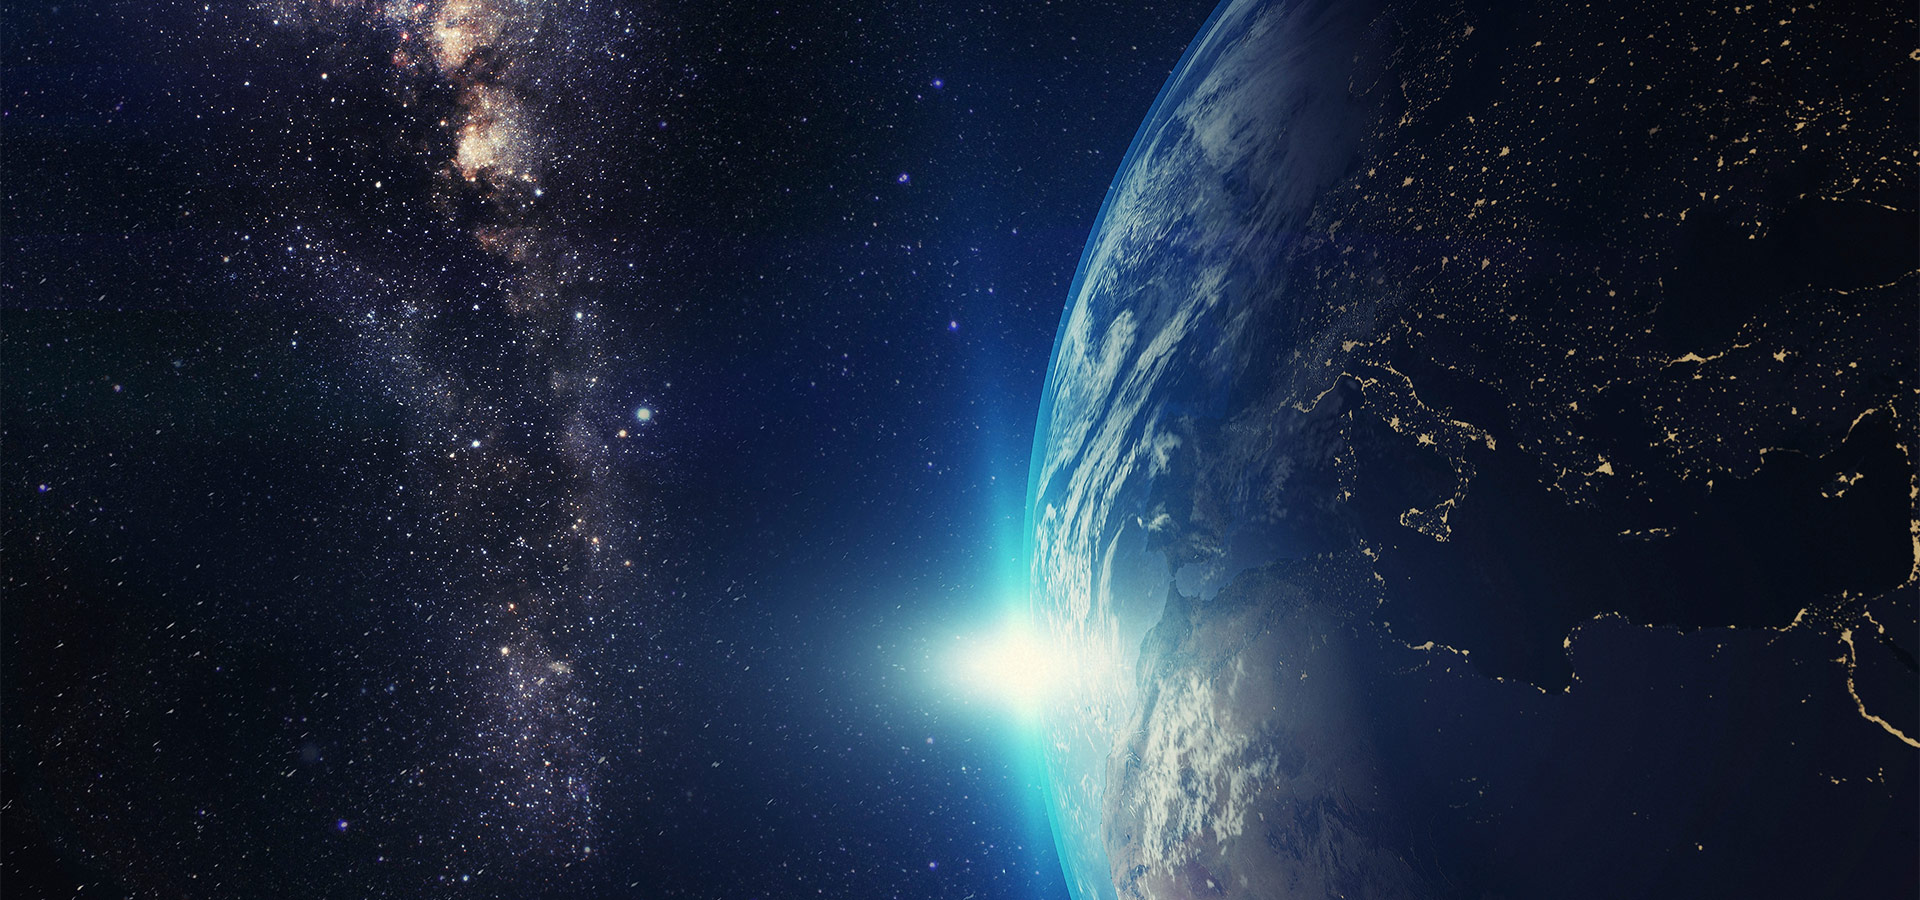 Earthrise guided meditation - For perspective